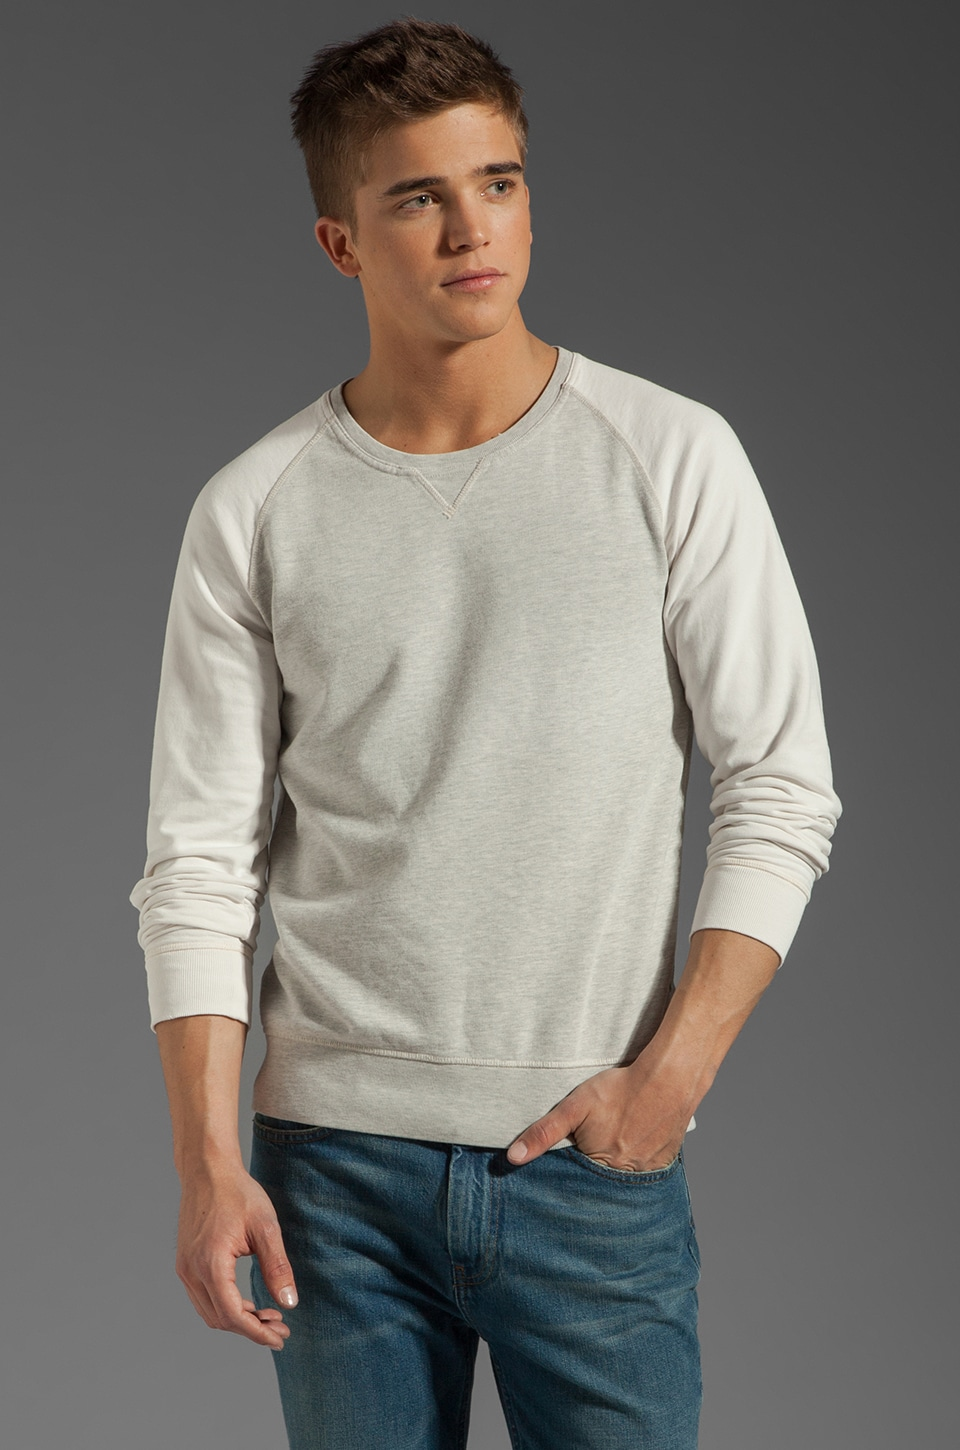 Scotch & Soda Contrast Raglan Sweater in Grey / White